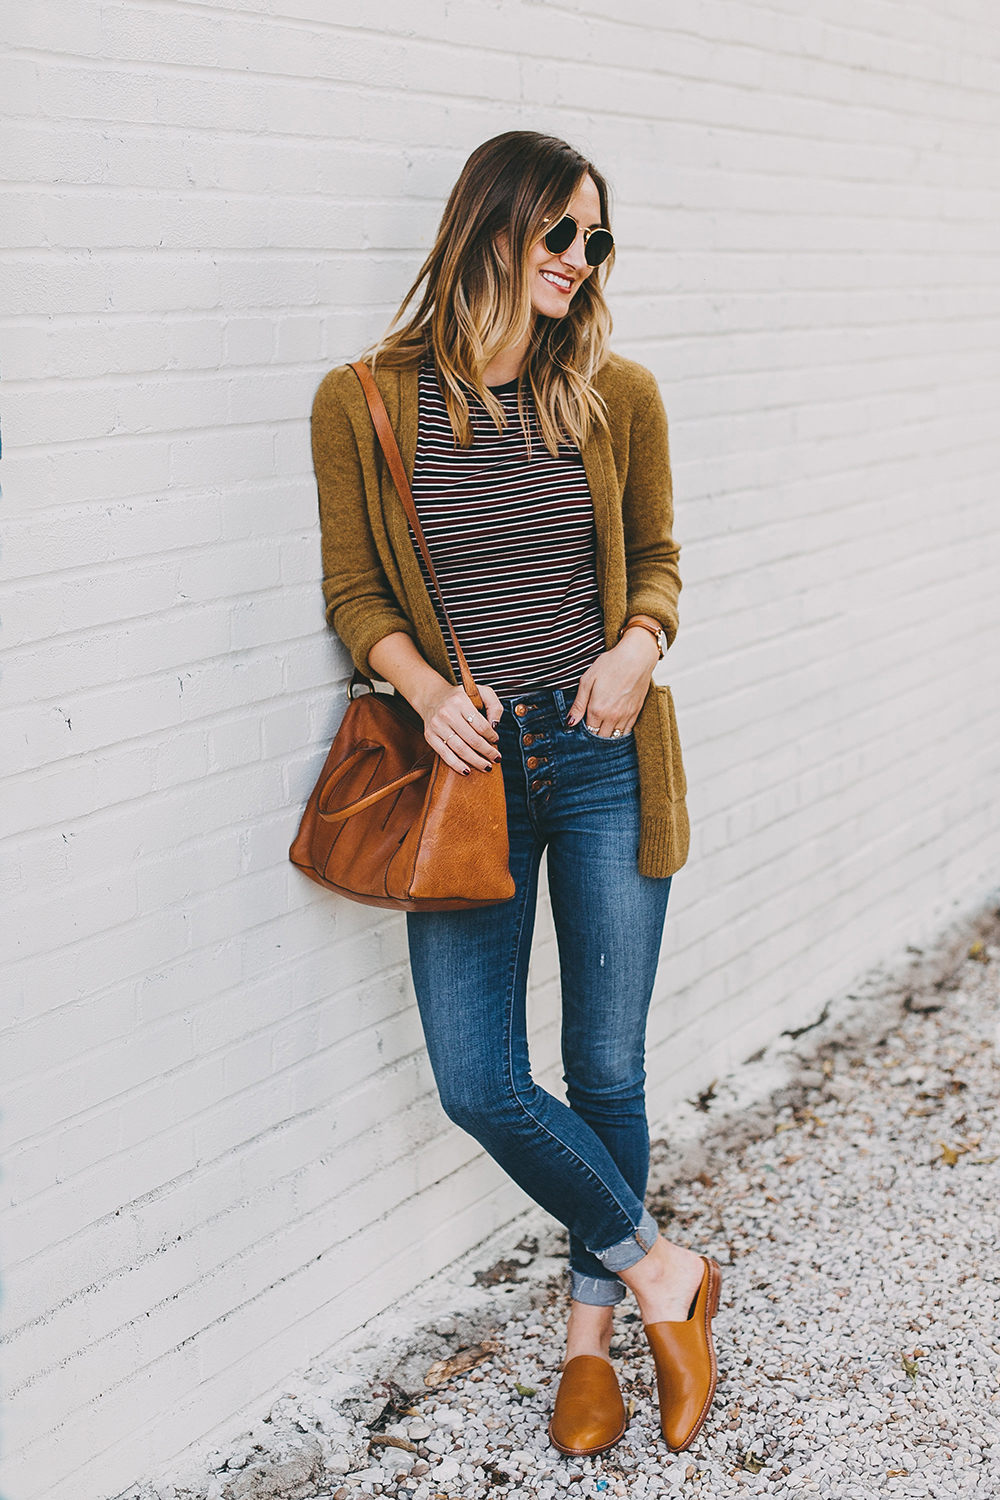 livvyland-blog-olivia-watson-austin-texas-fashion-lifestyle-blogger-madewell-grandpa-cardigan-button-up-high-rise-skinny-jeans-tan-leather-slides-fall-outfit-style-idea-1